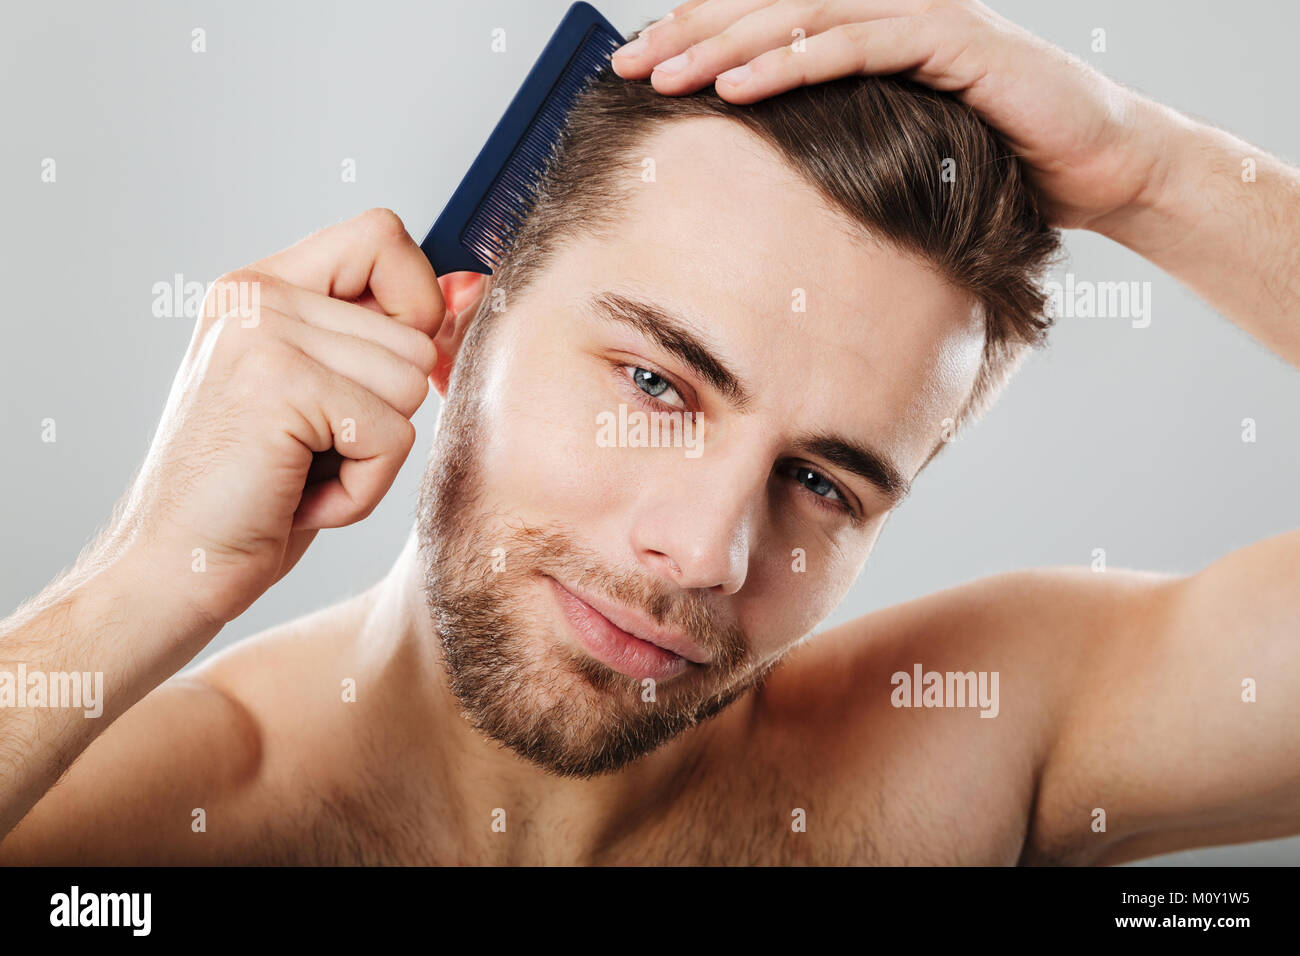 Close up portrait of a smiling man combing his hair isolated over gray background Stock Photo